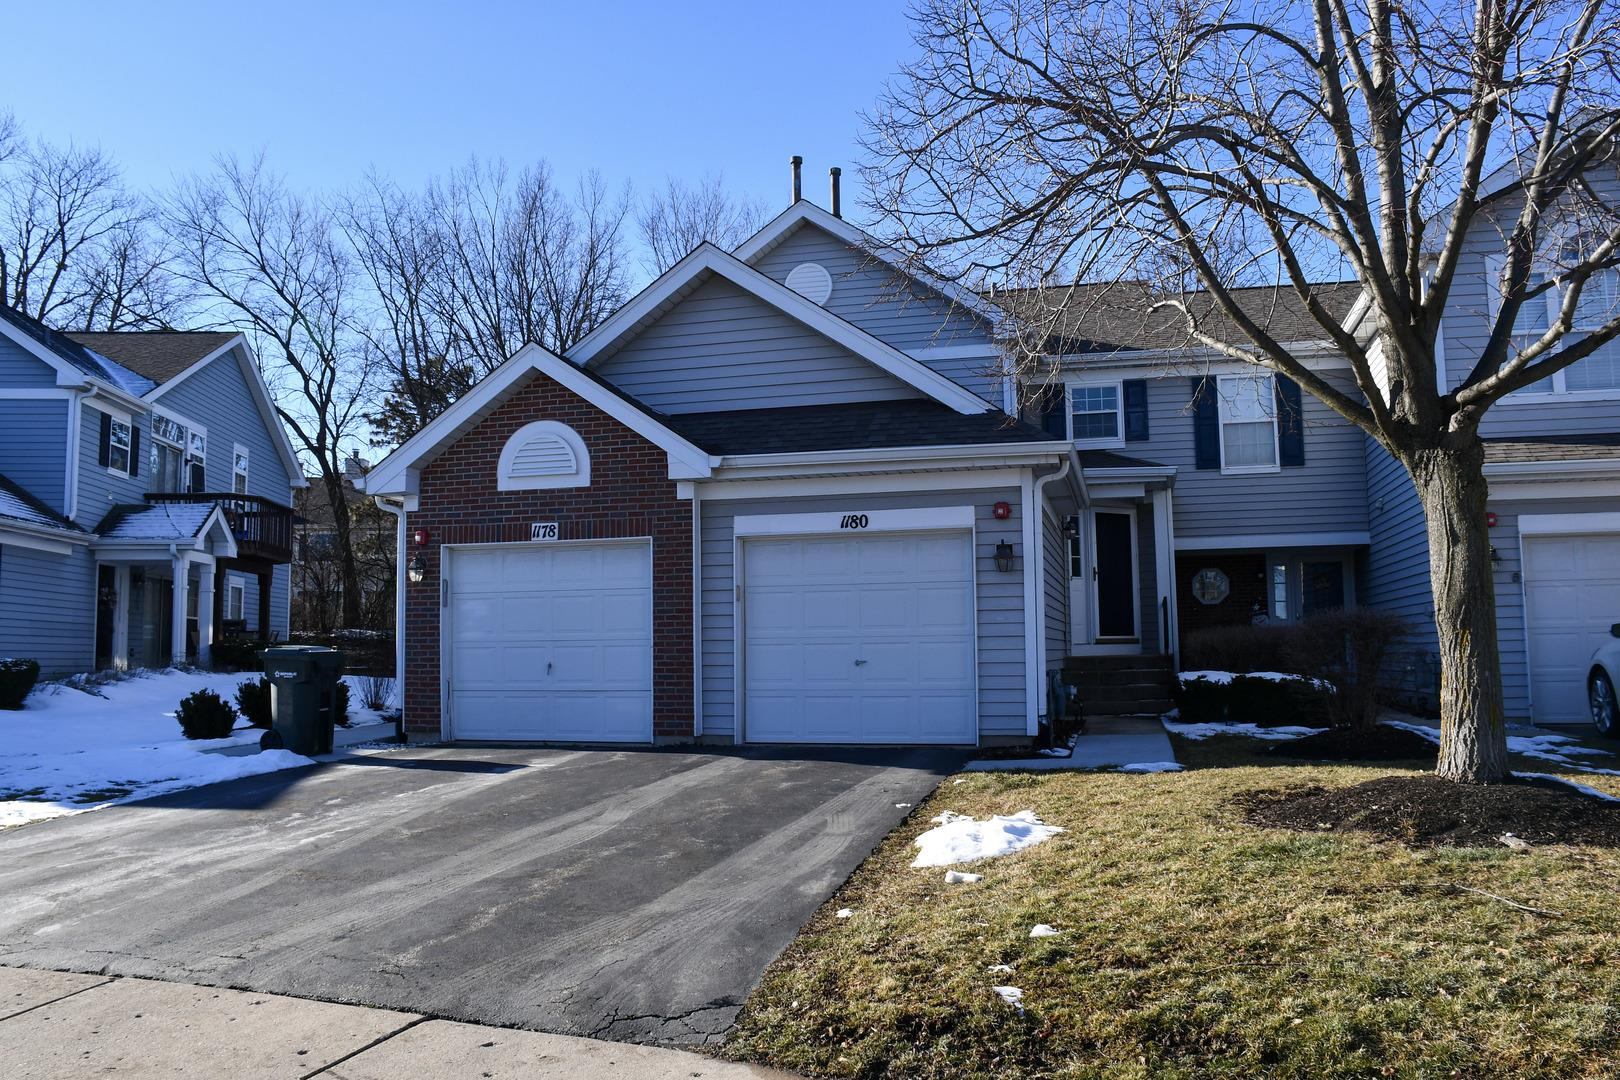 1180 HARBOR Court #1180, Glendale Heights, IL 60139 - #: 10976907